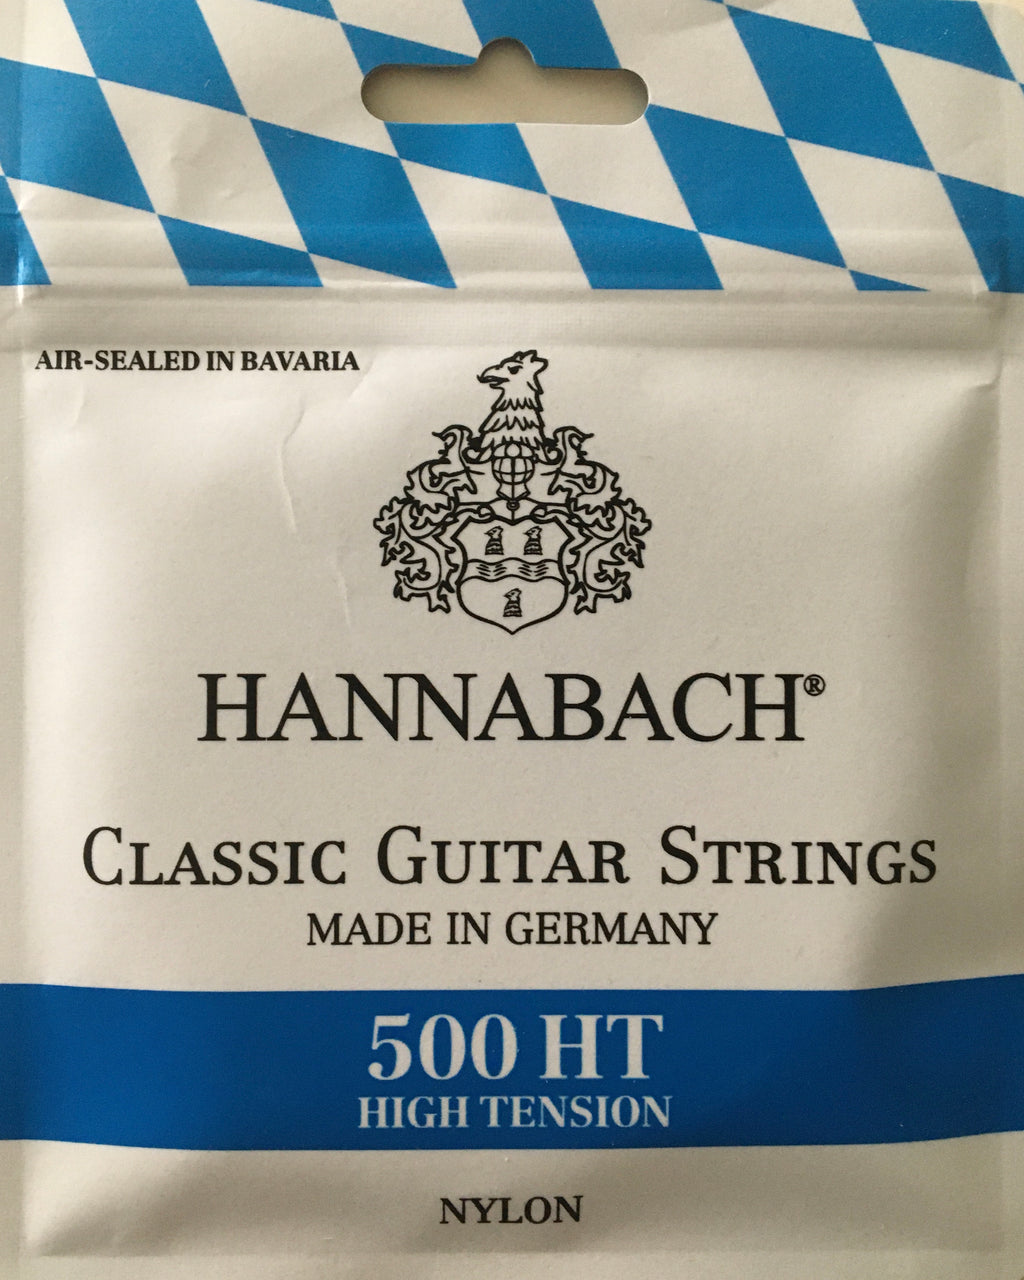 Hannabach Classic Guitar Strings High Tension